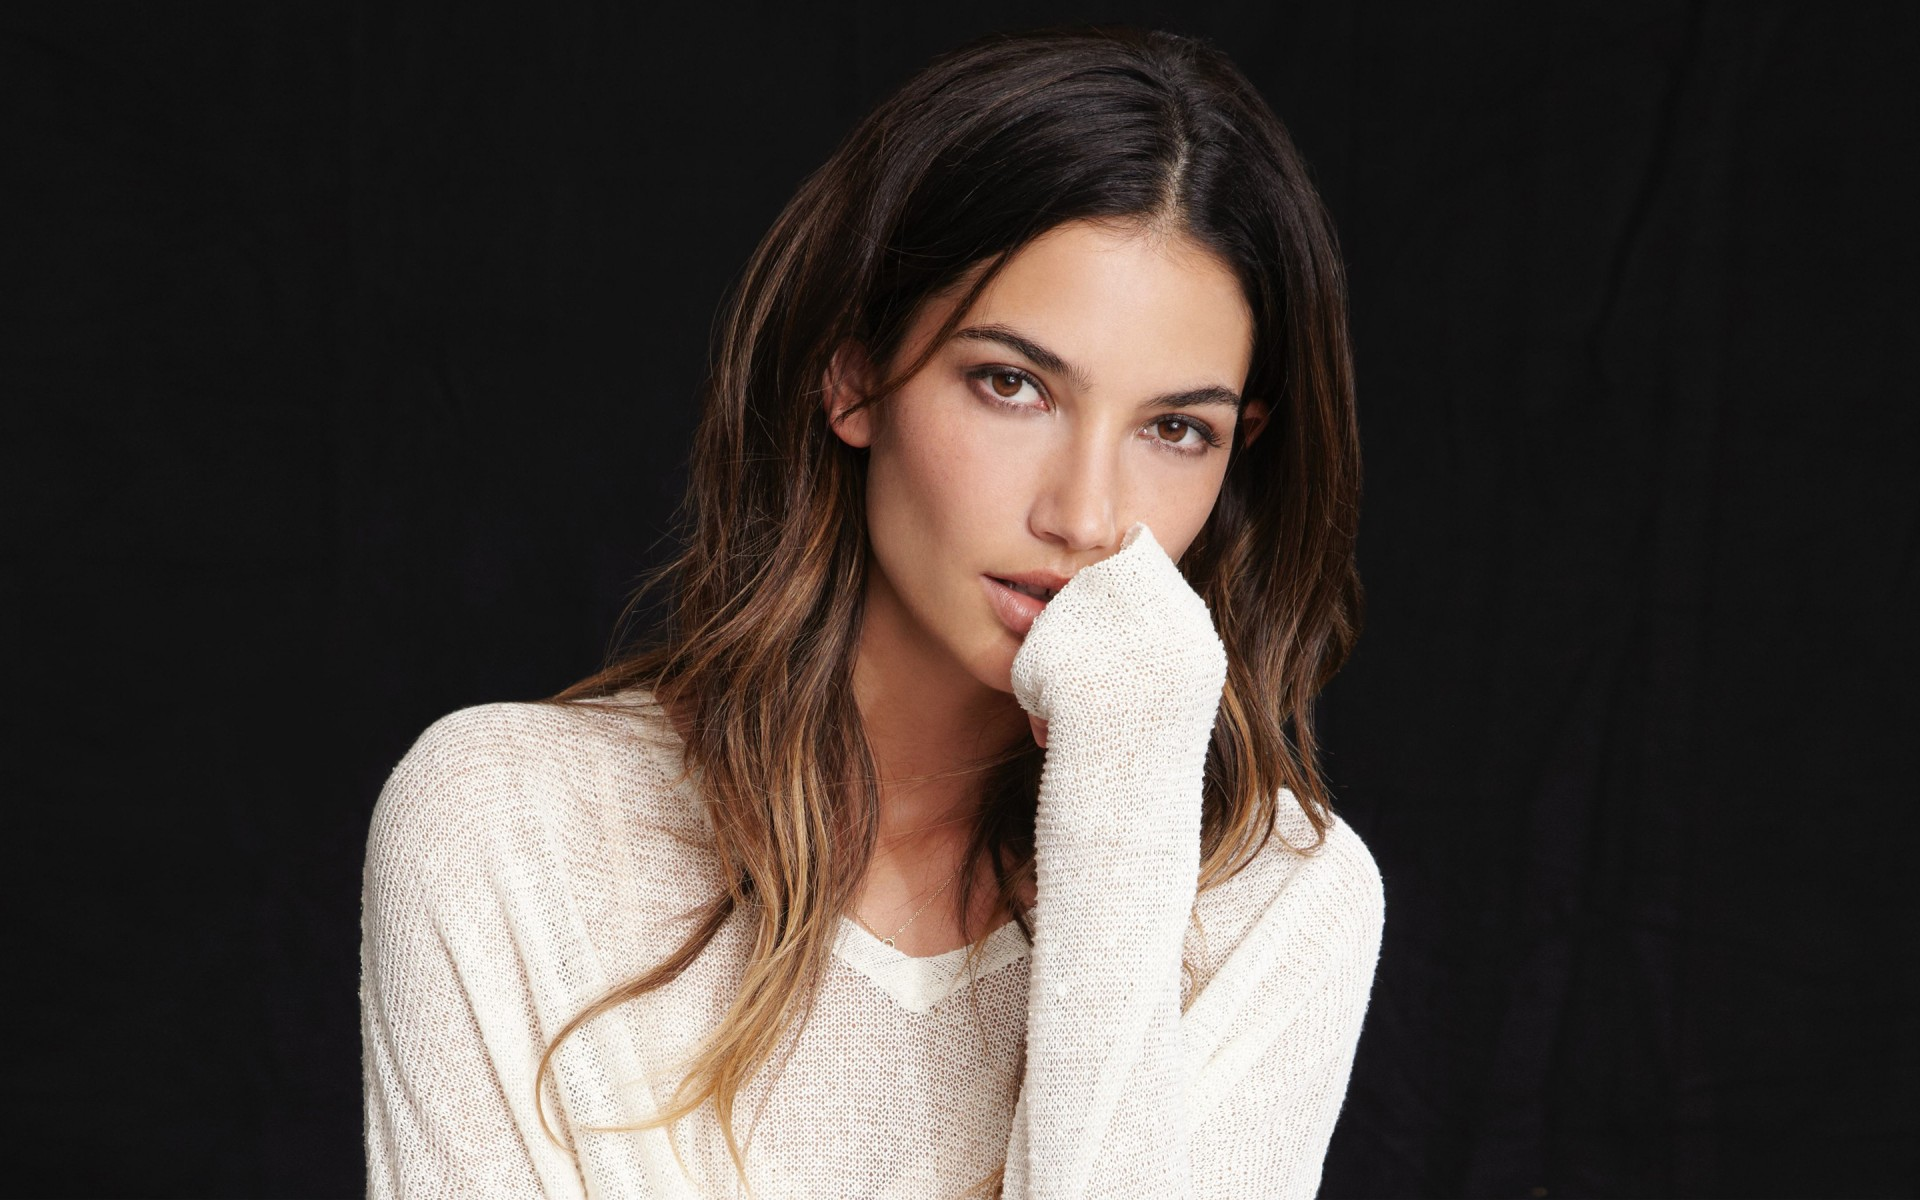 Cute Hd Wallpapers 1080p Widescreen Model Lily Aldridge Wallpapers Hd Wallpapers Id 15993